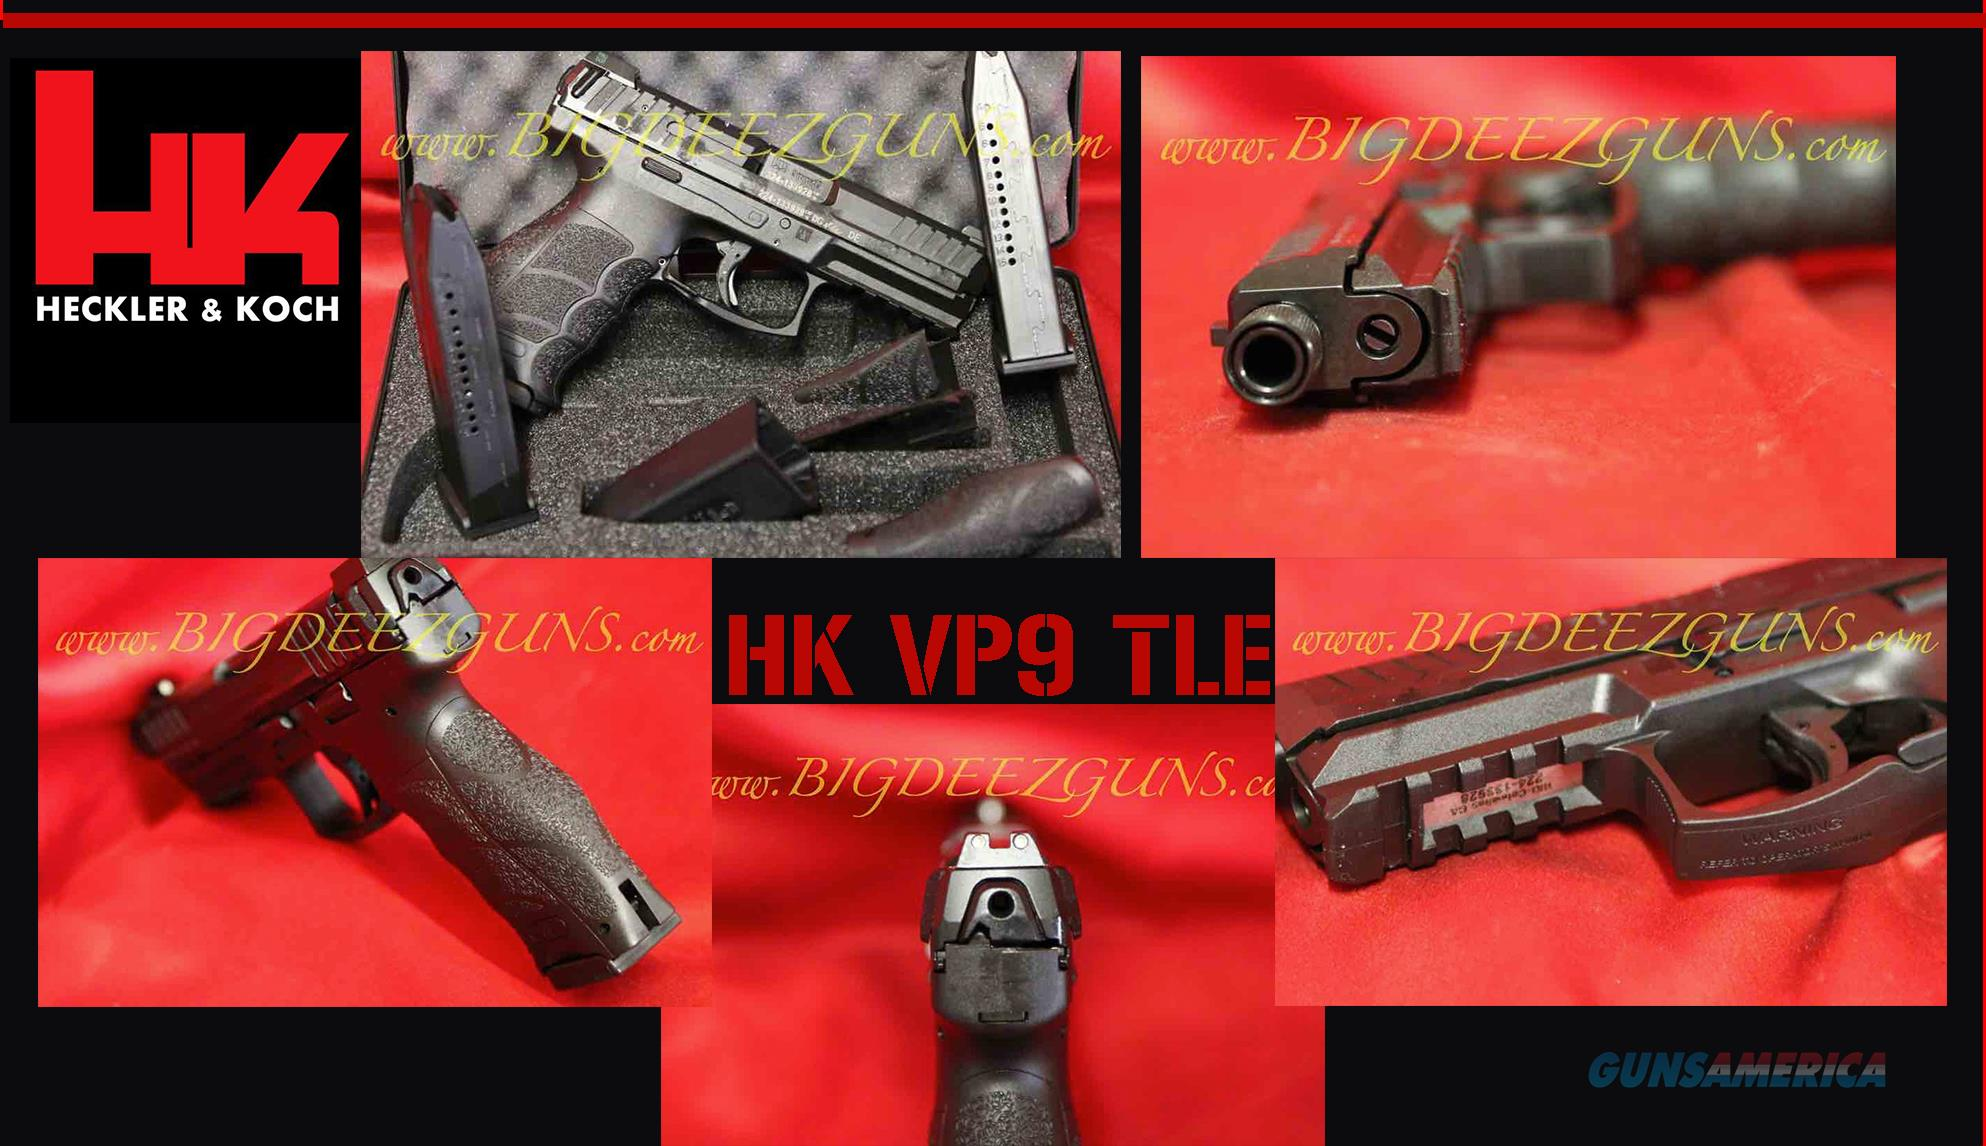 Hk H&K Heckler Koch VP9 TACTICAL THREADED BARREL LE NIGHT SIGHT 9mm 15 round M700009TLE-A5 3 mags  Guns > Pistols > Heckler & Koch Pistols > Polymer Frame